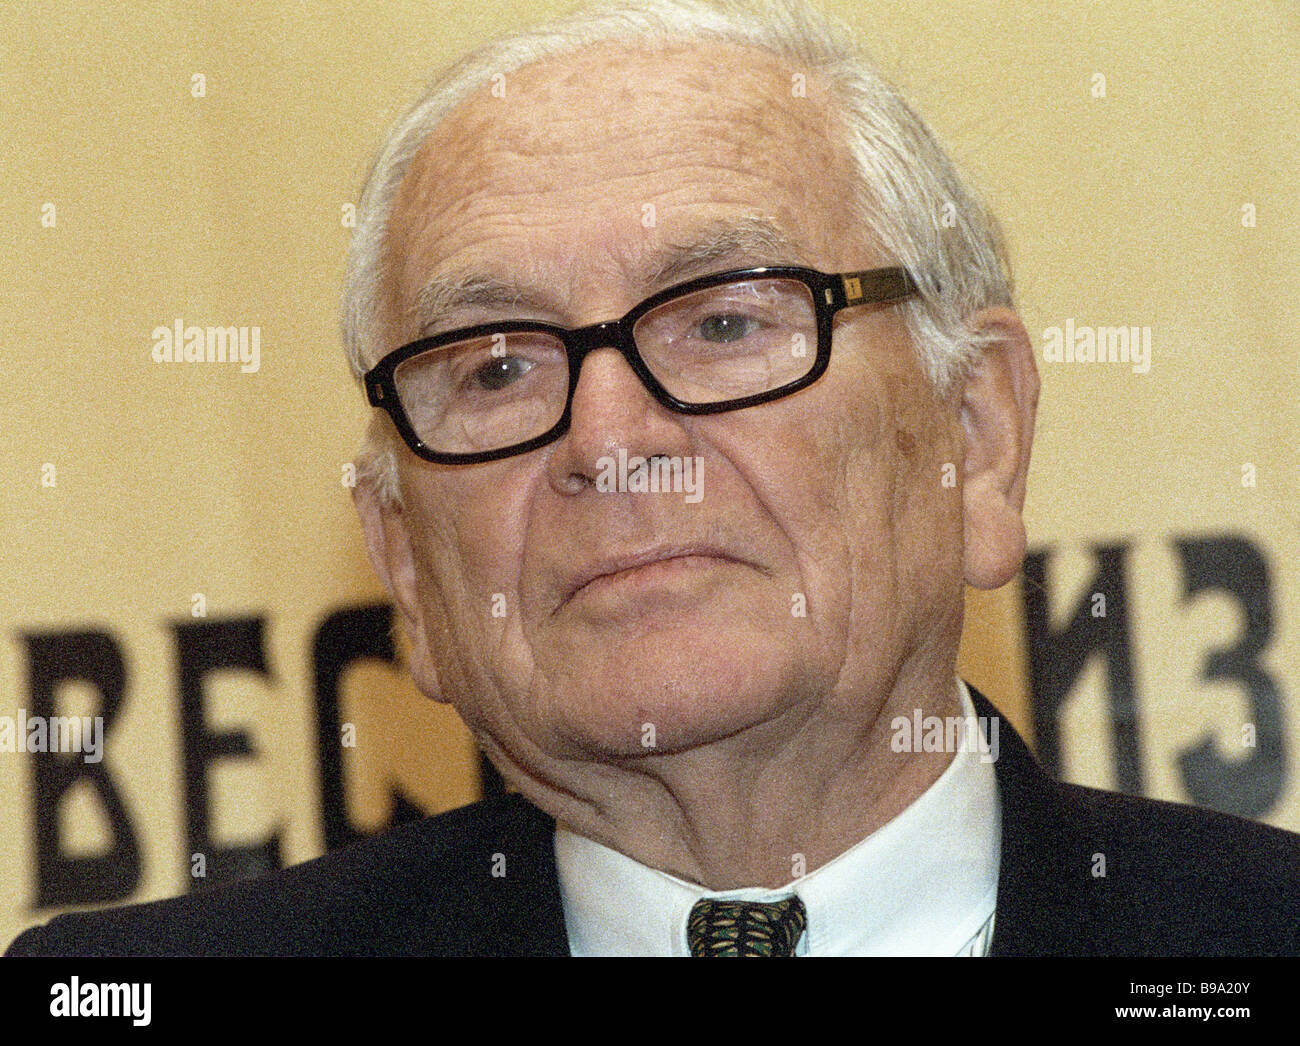 French fashion designer Pierre Cardin - Stock Image